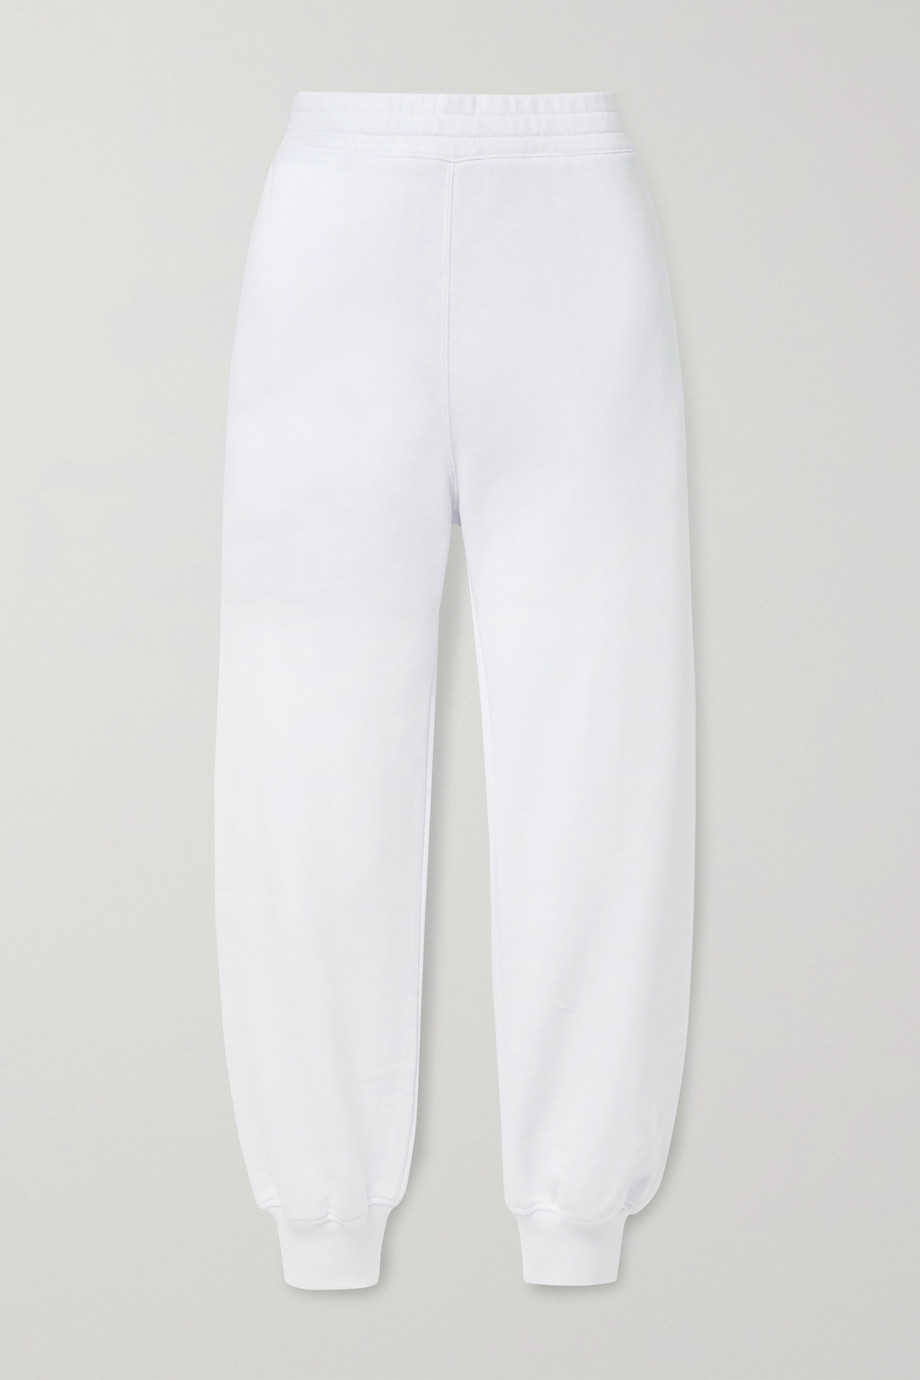 ALEXANDER MCQUEEN Printed cotton-jersey track pants